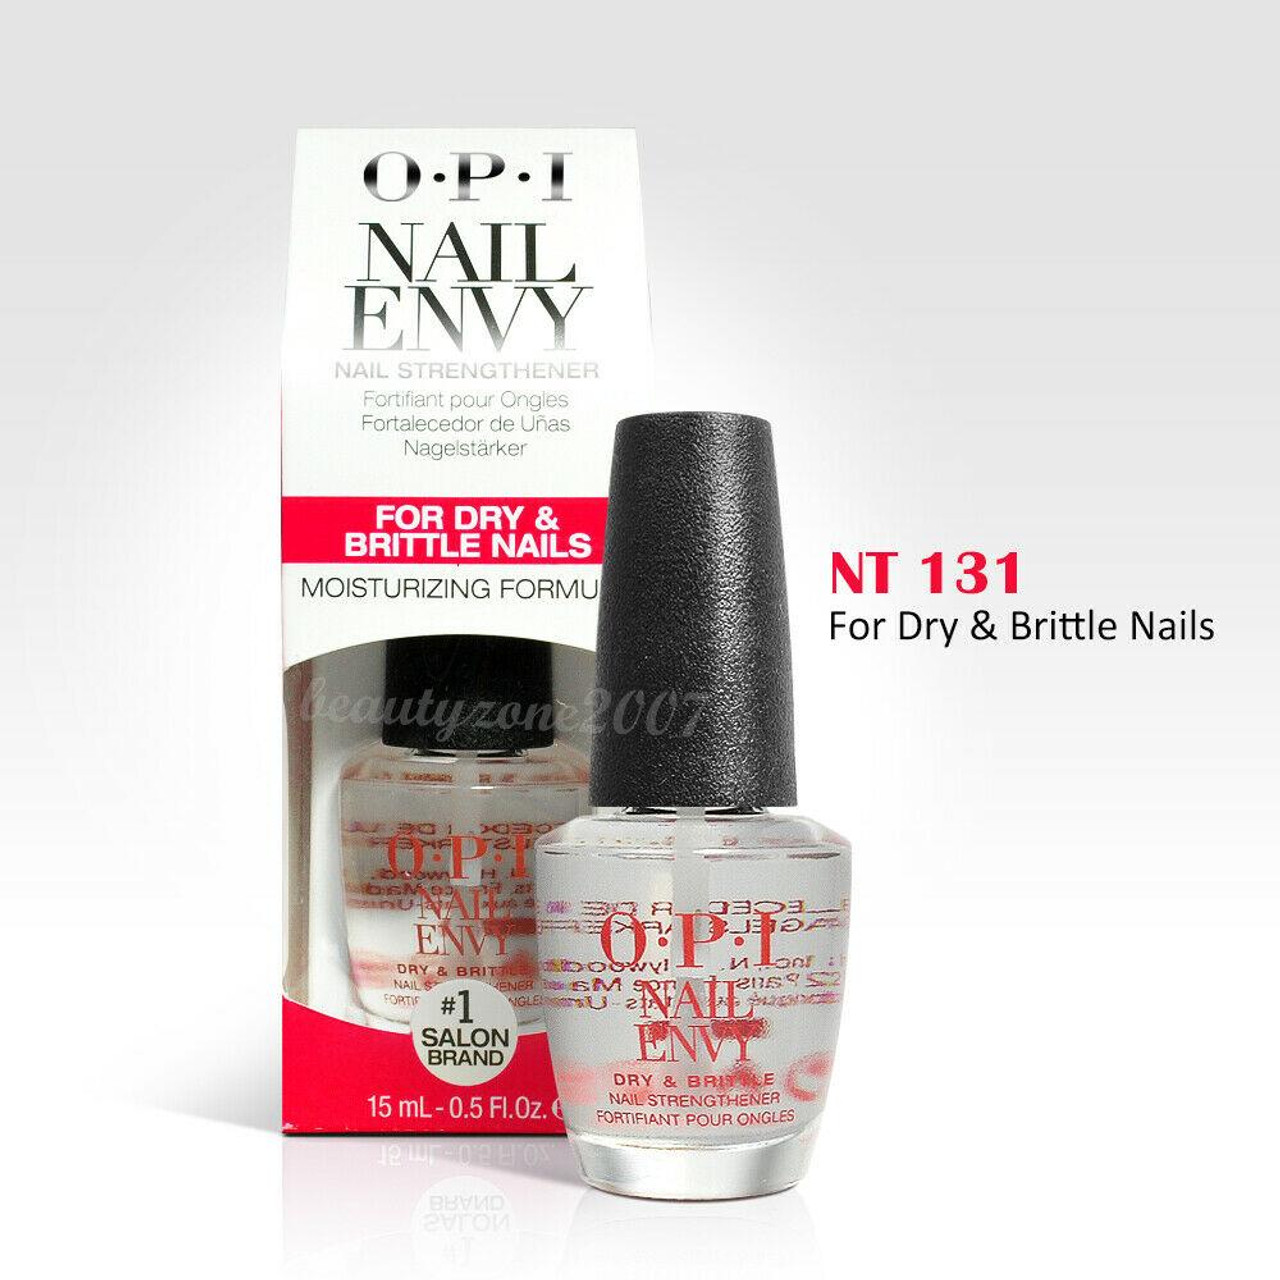 OPI NT131 Nail Strengthener For Dry & Brittle Nails with Humectants ...